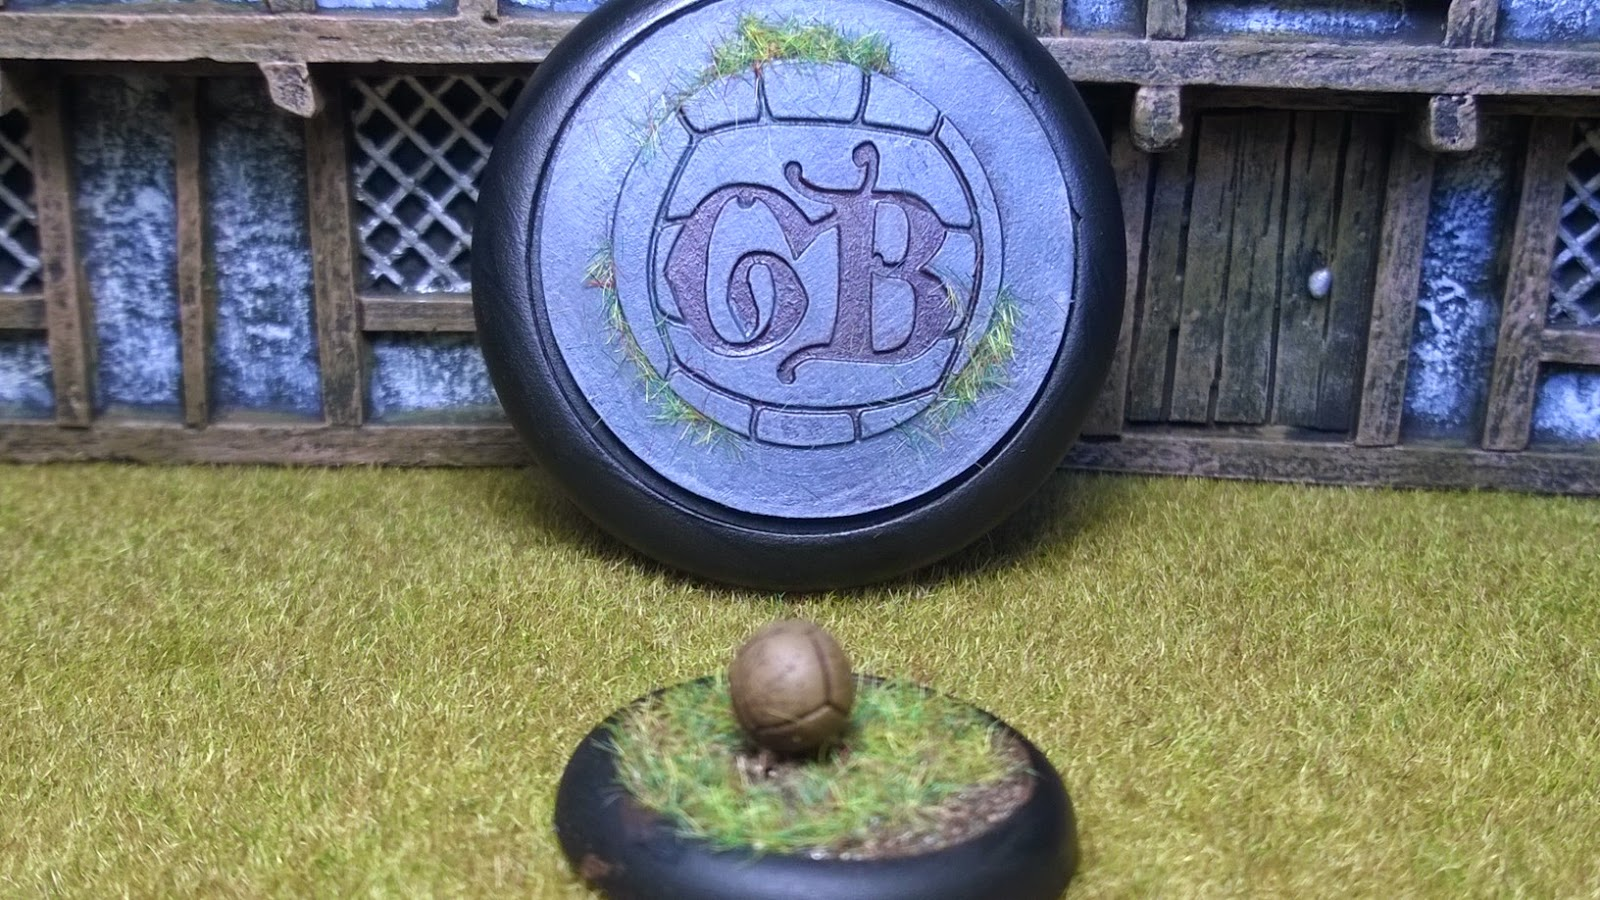 guildball goal ball guild game painted ltd ed kickstarter